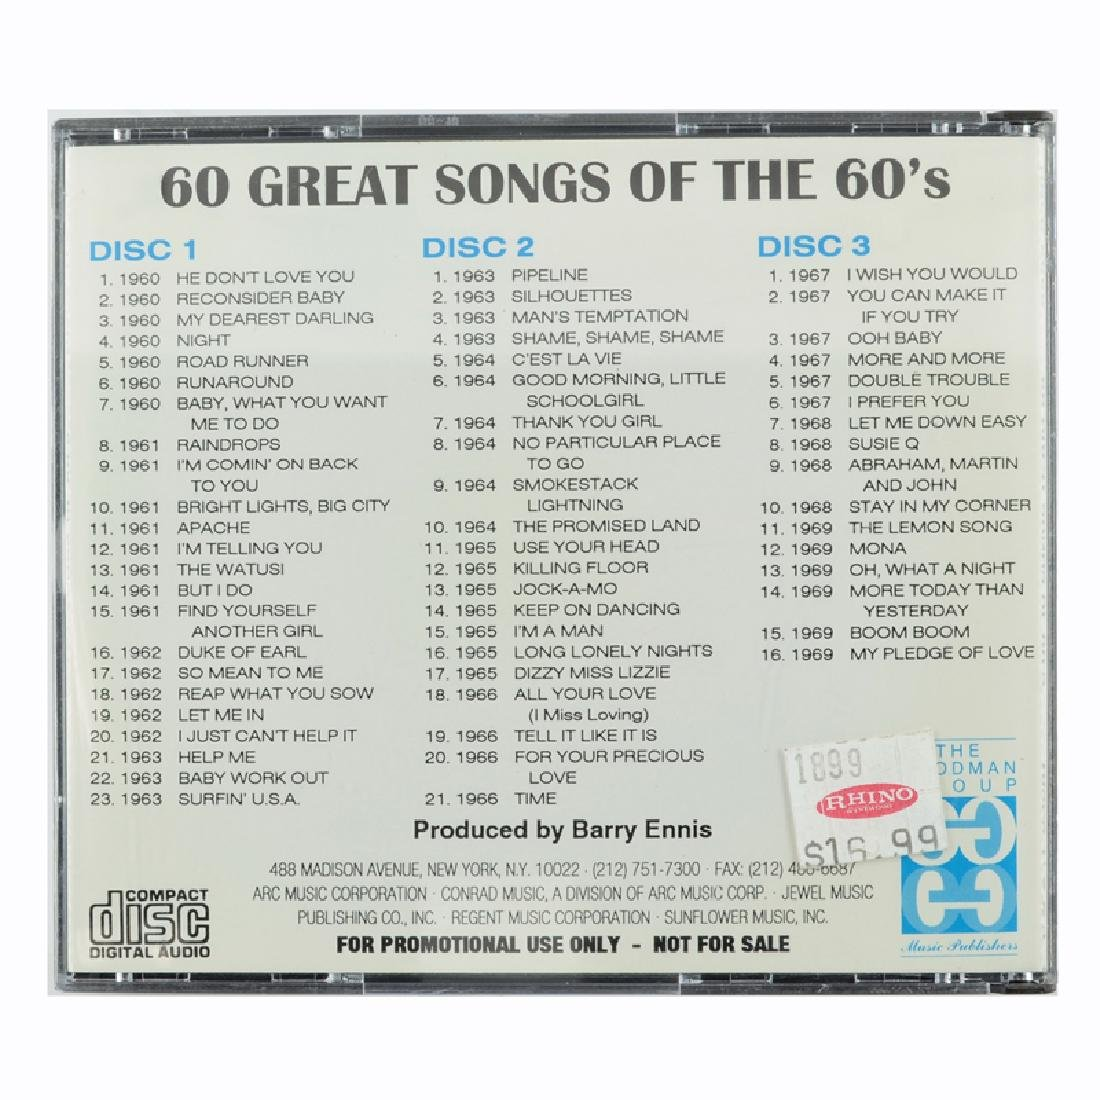 The Goodman Group Presents 60 Great Songs Of The 60's 3 - 2